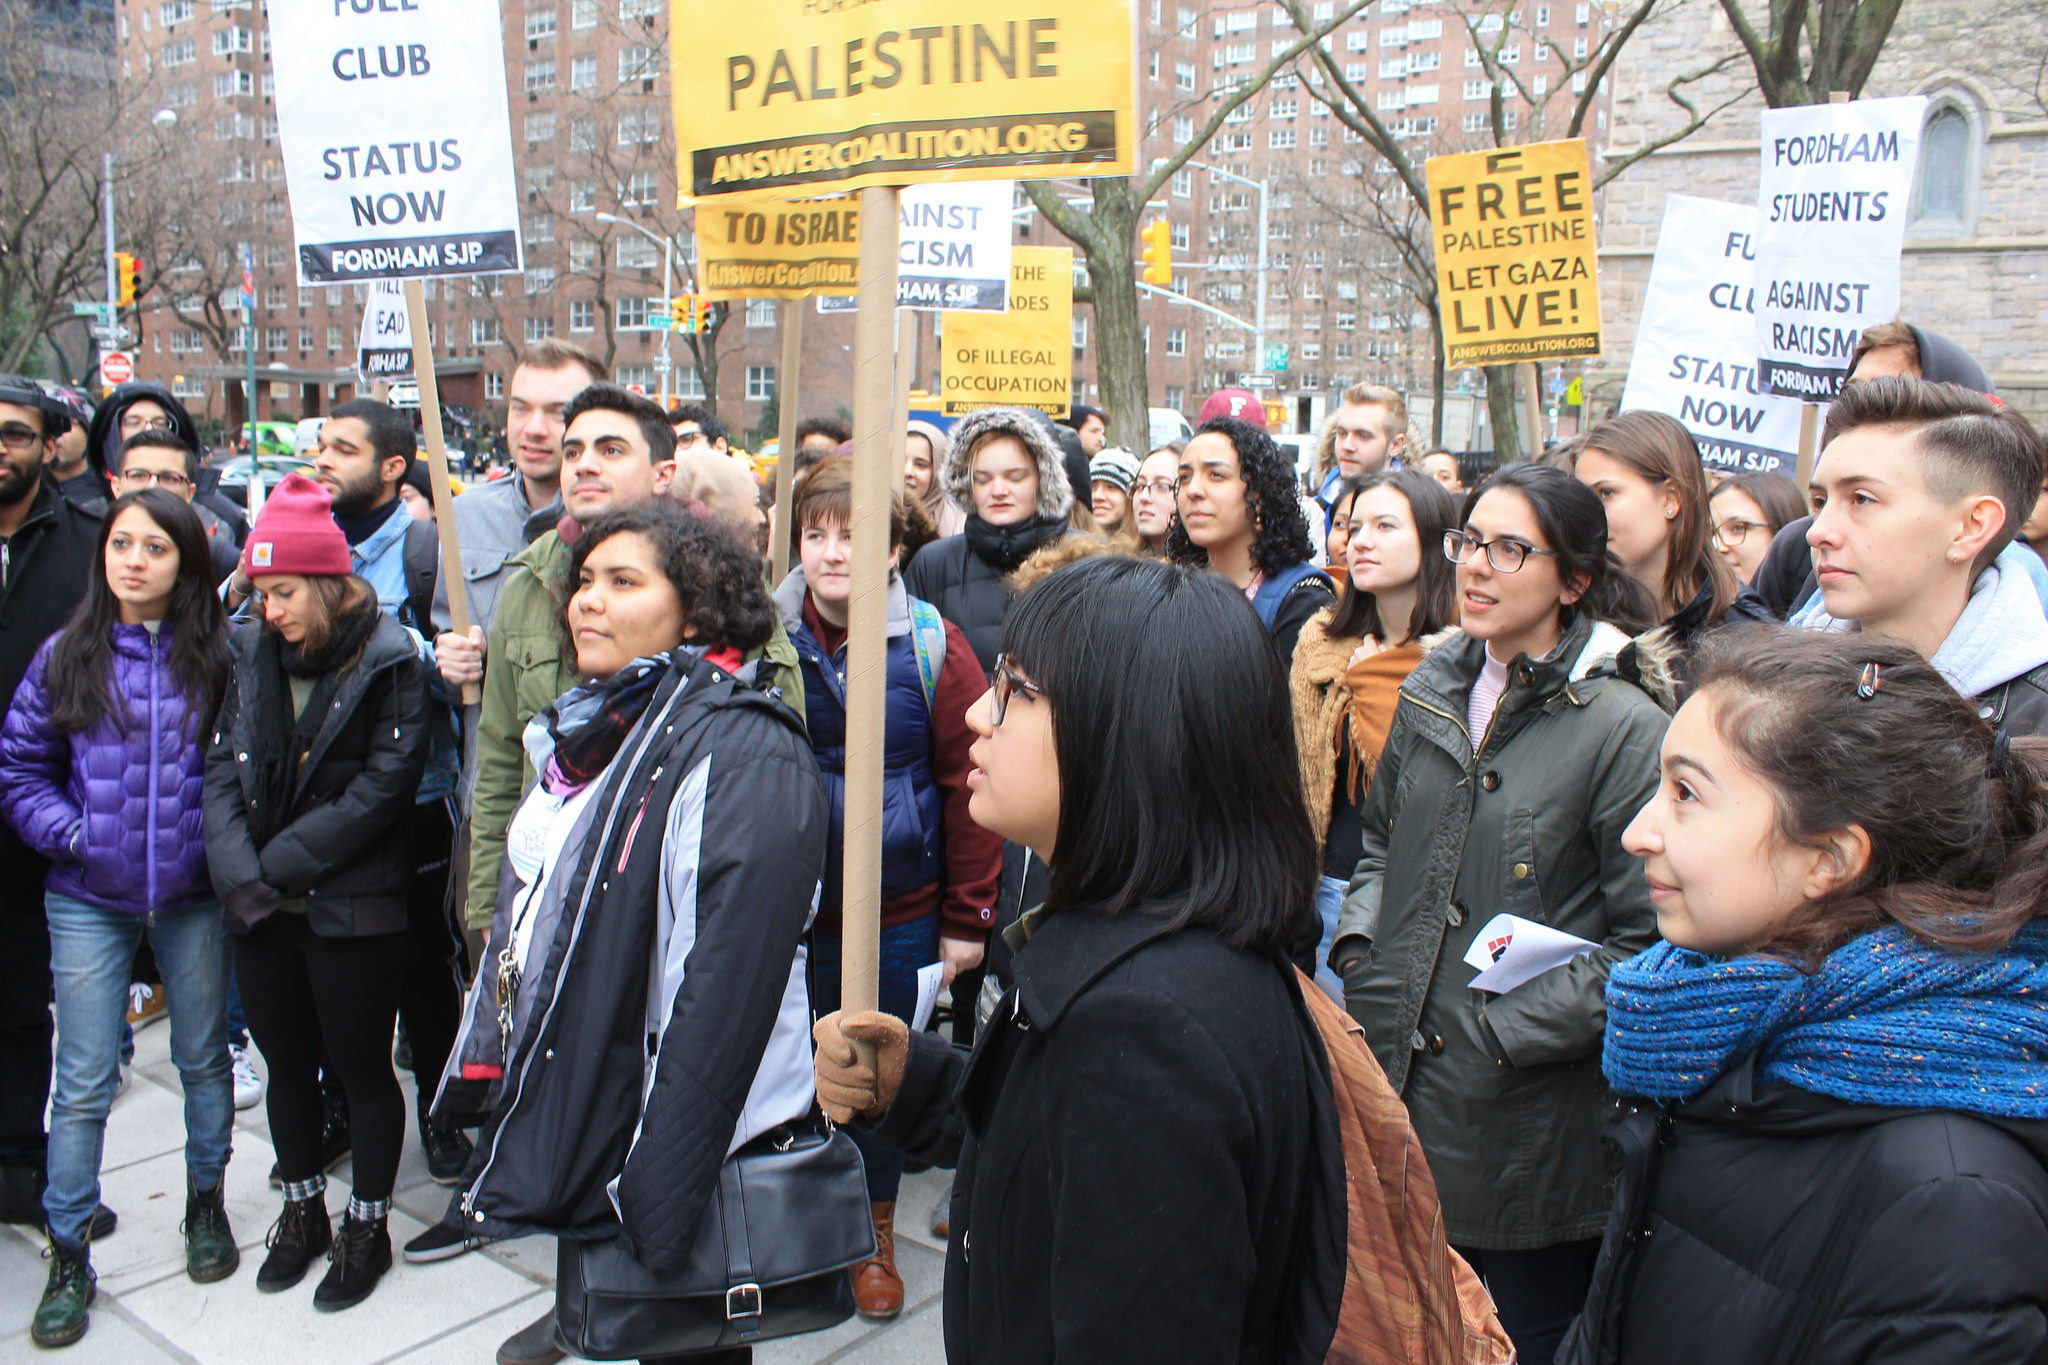 Sofia Dadap, one of the Fordham petitioners, protests the SJP ban in January 2017. Photo: Joe Catron